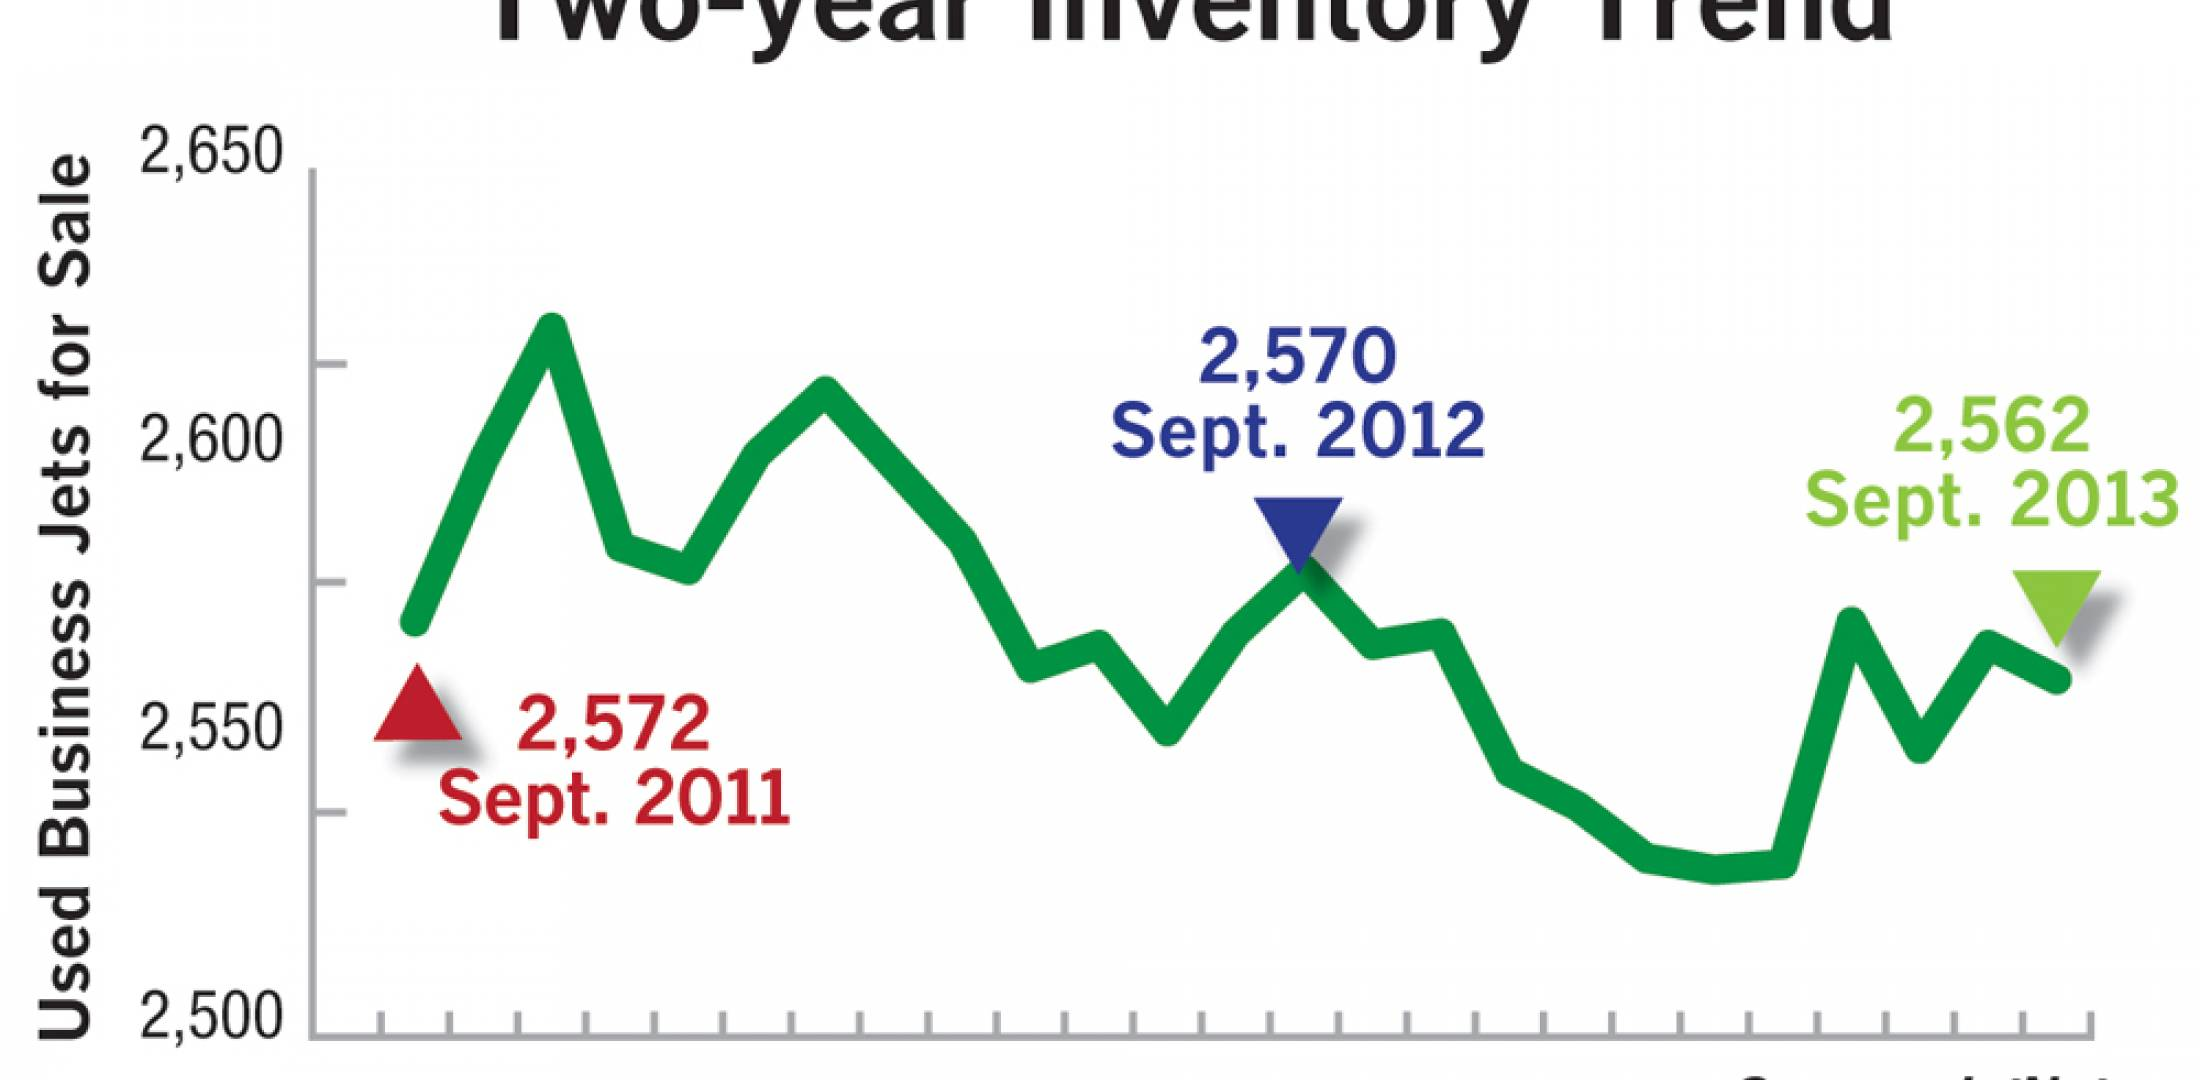 Two-year Inventory Trend